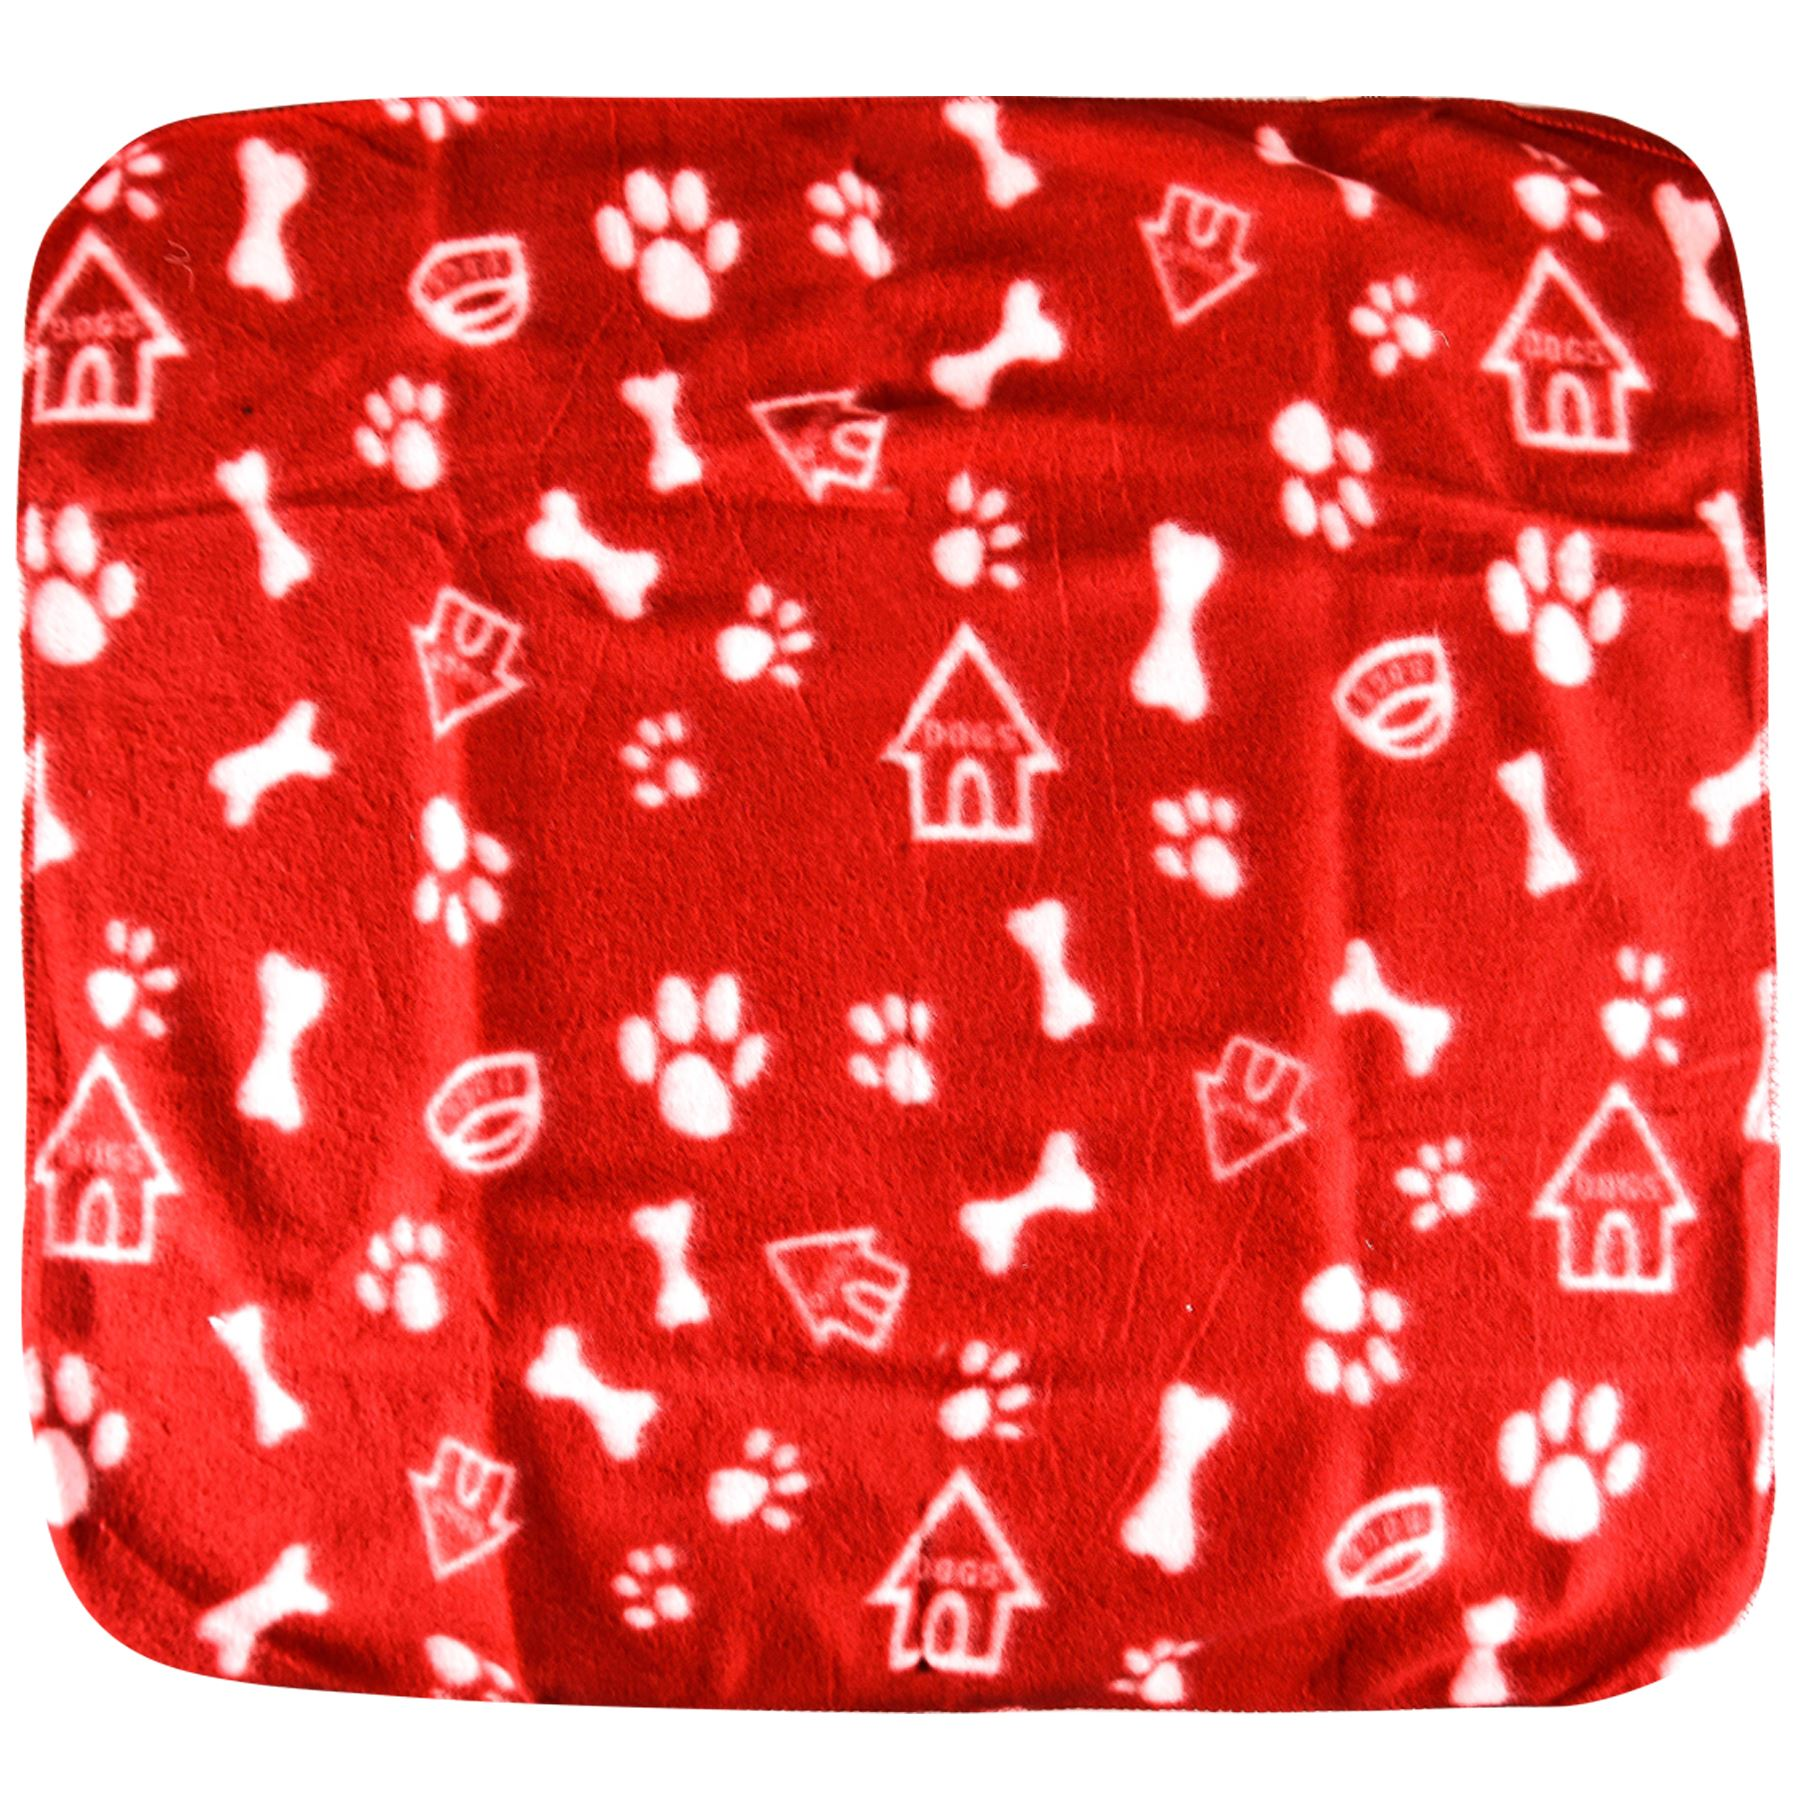 Pet-Blanket-Dogs-amp-Puppy-Cat-Paw-Print-Soft-Warm-Fleece-Bed-Travel-Basket-Car thumbnail 28